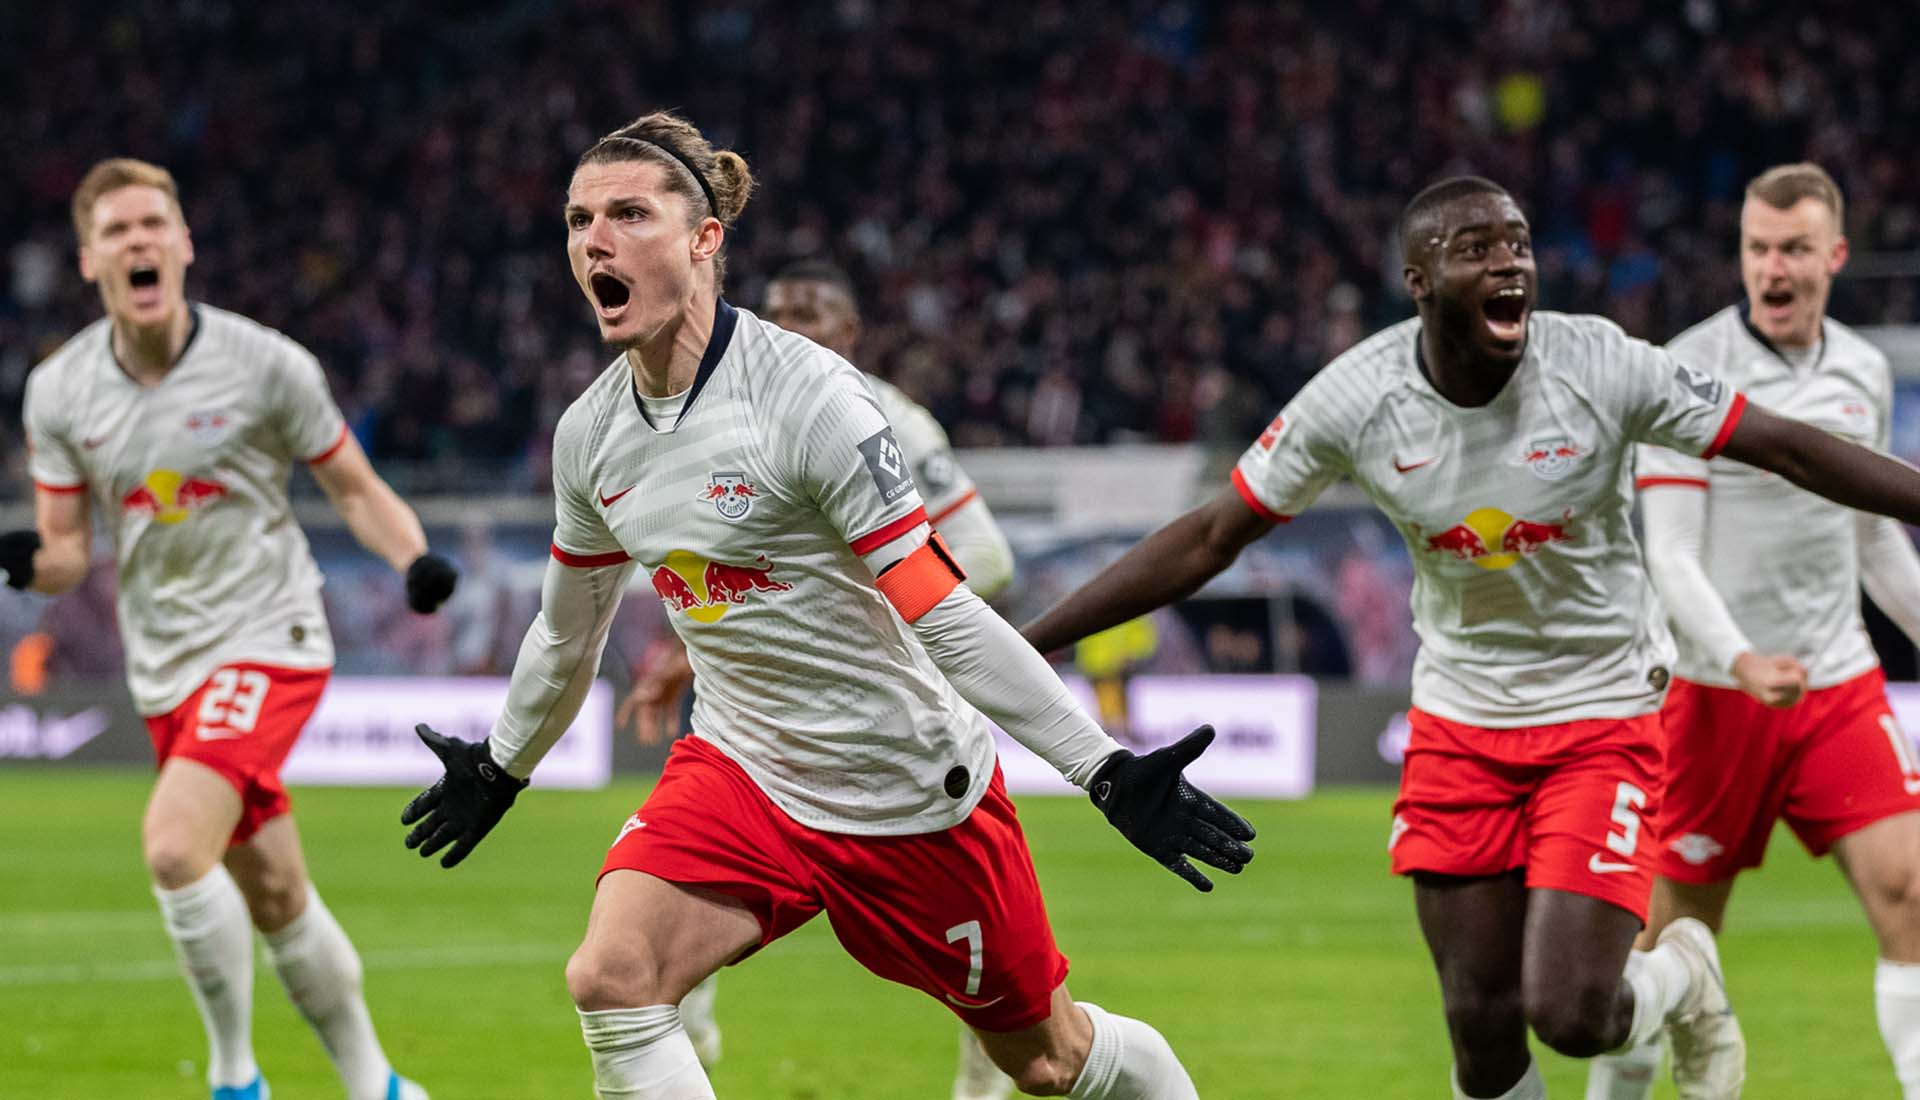 RB Leipzig Set To Become Nike's 10th Elite Team - SoccerBible